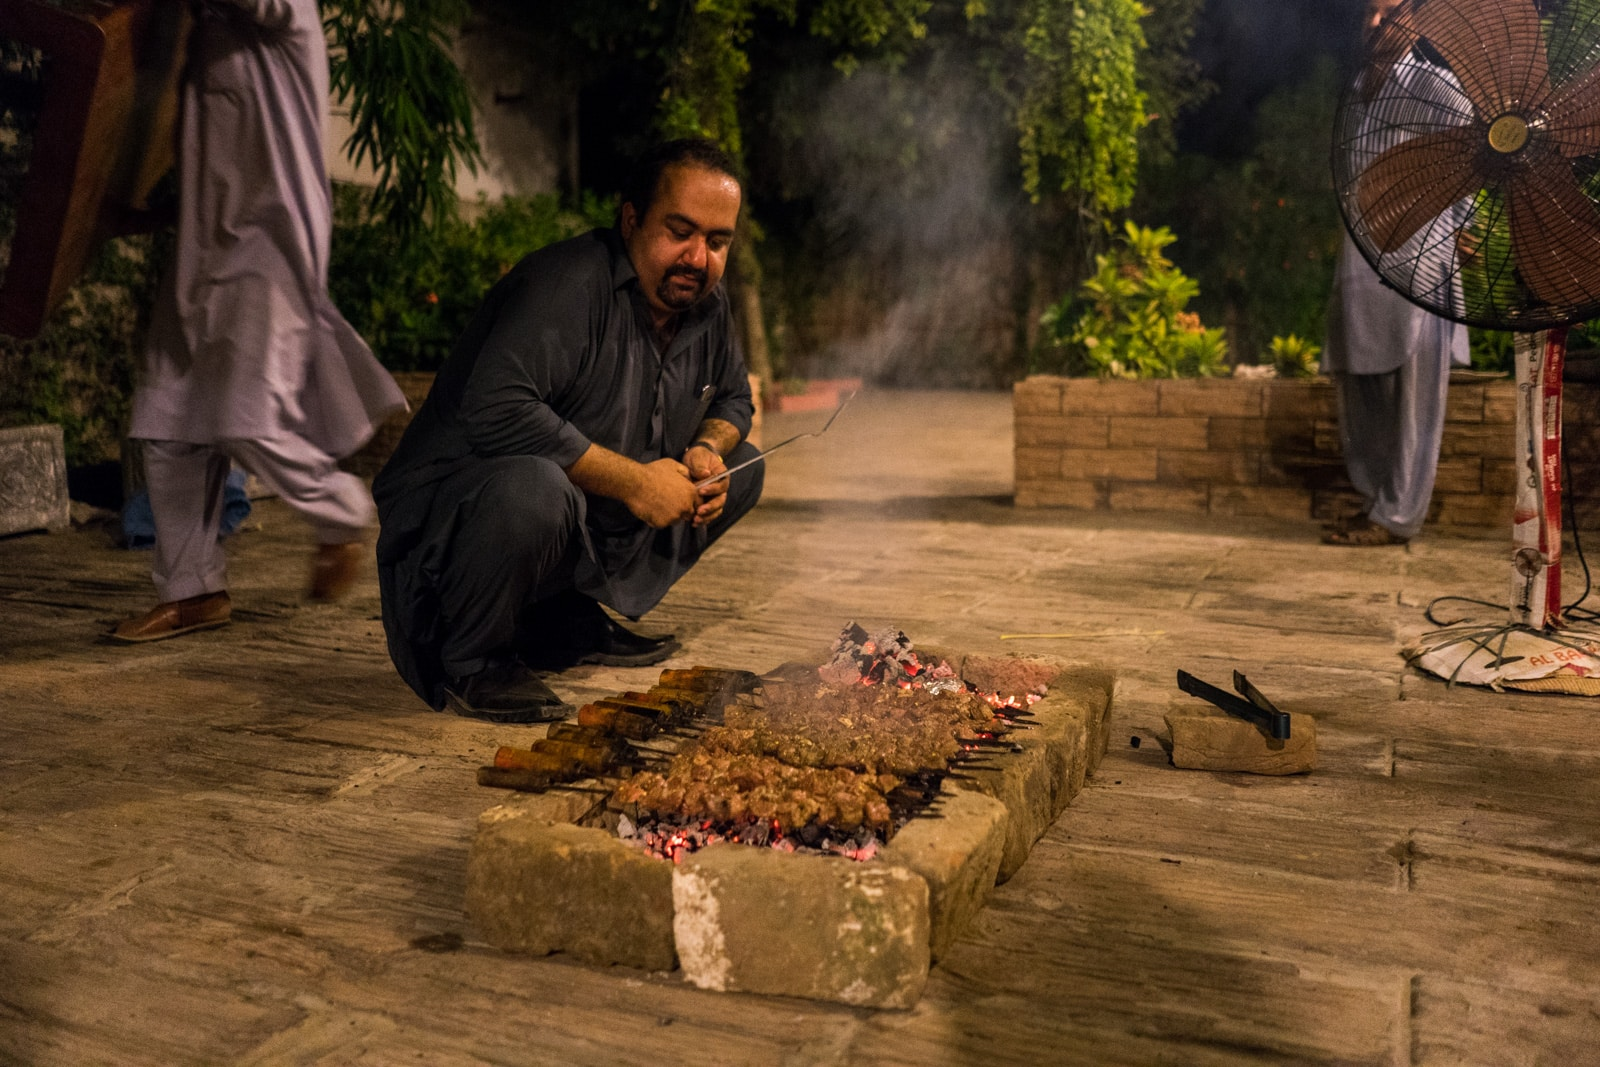 Who are the Pashtuns of Pakistan? - Hamza barbecuing - Lost With Purpose travel blog